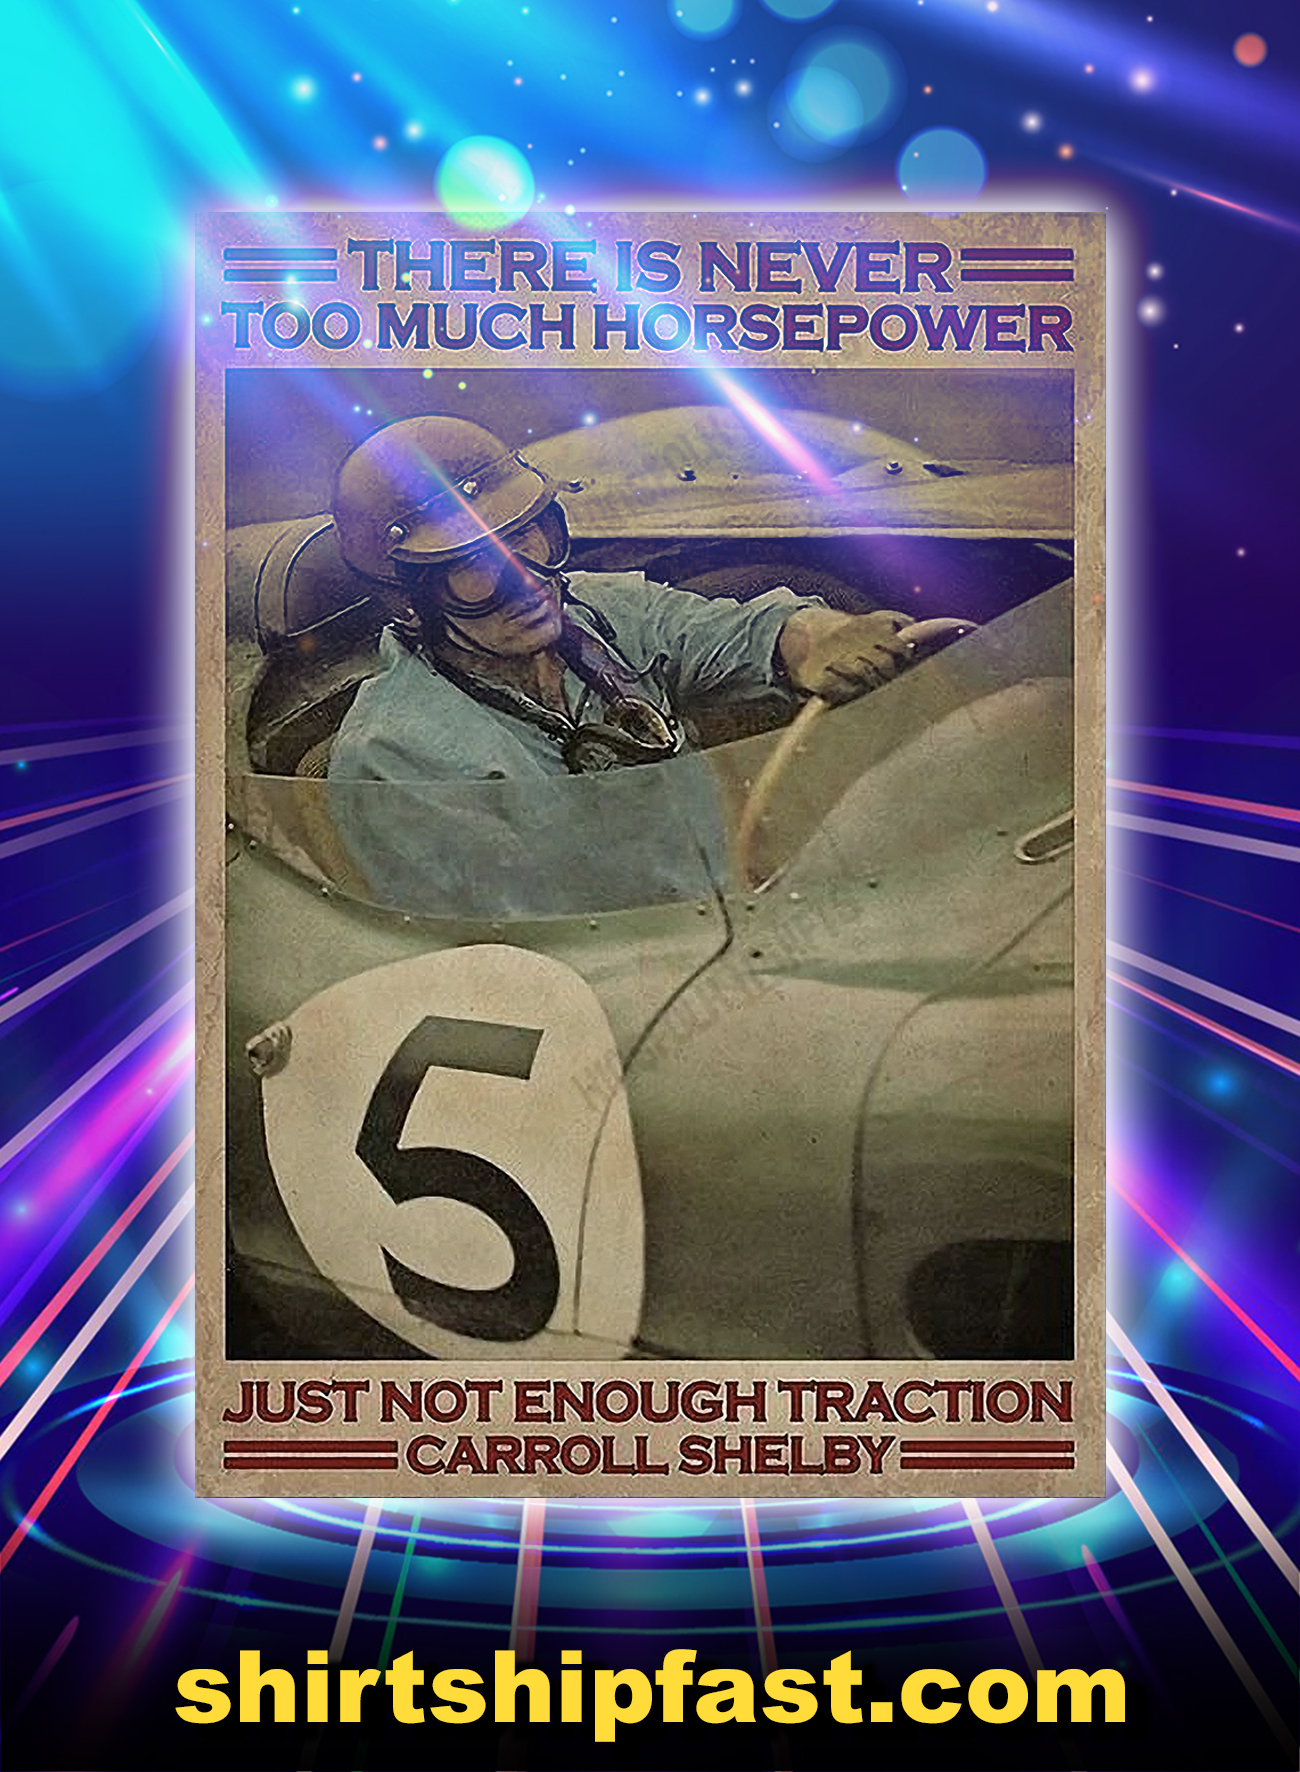 Carroll Shelby There is never too much horsepower just not enough traction poster